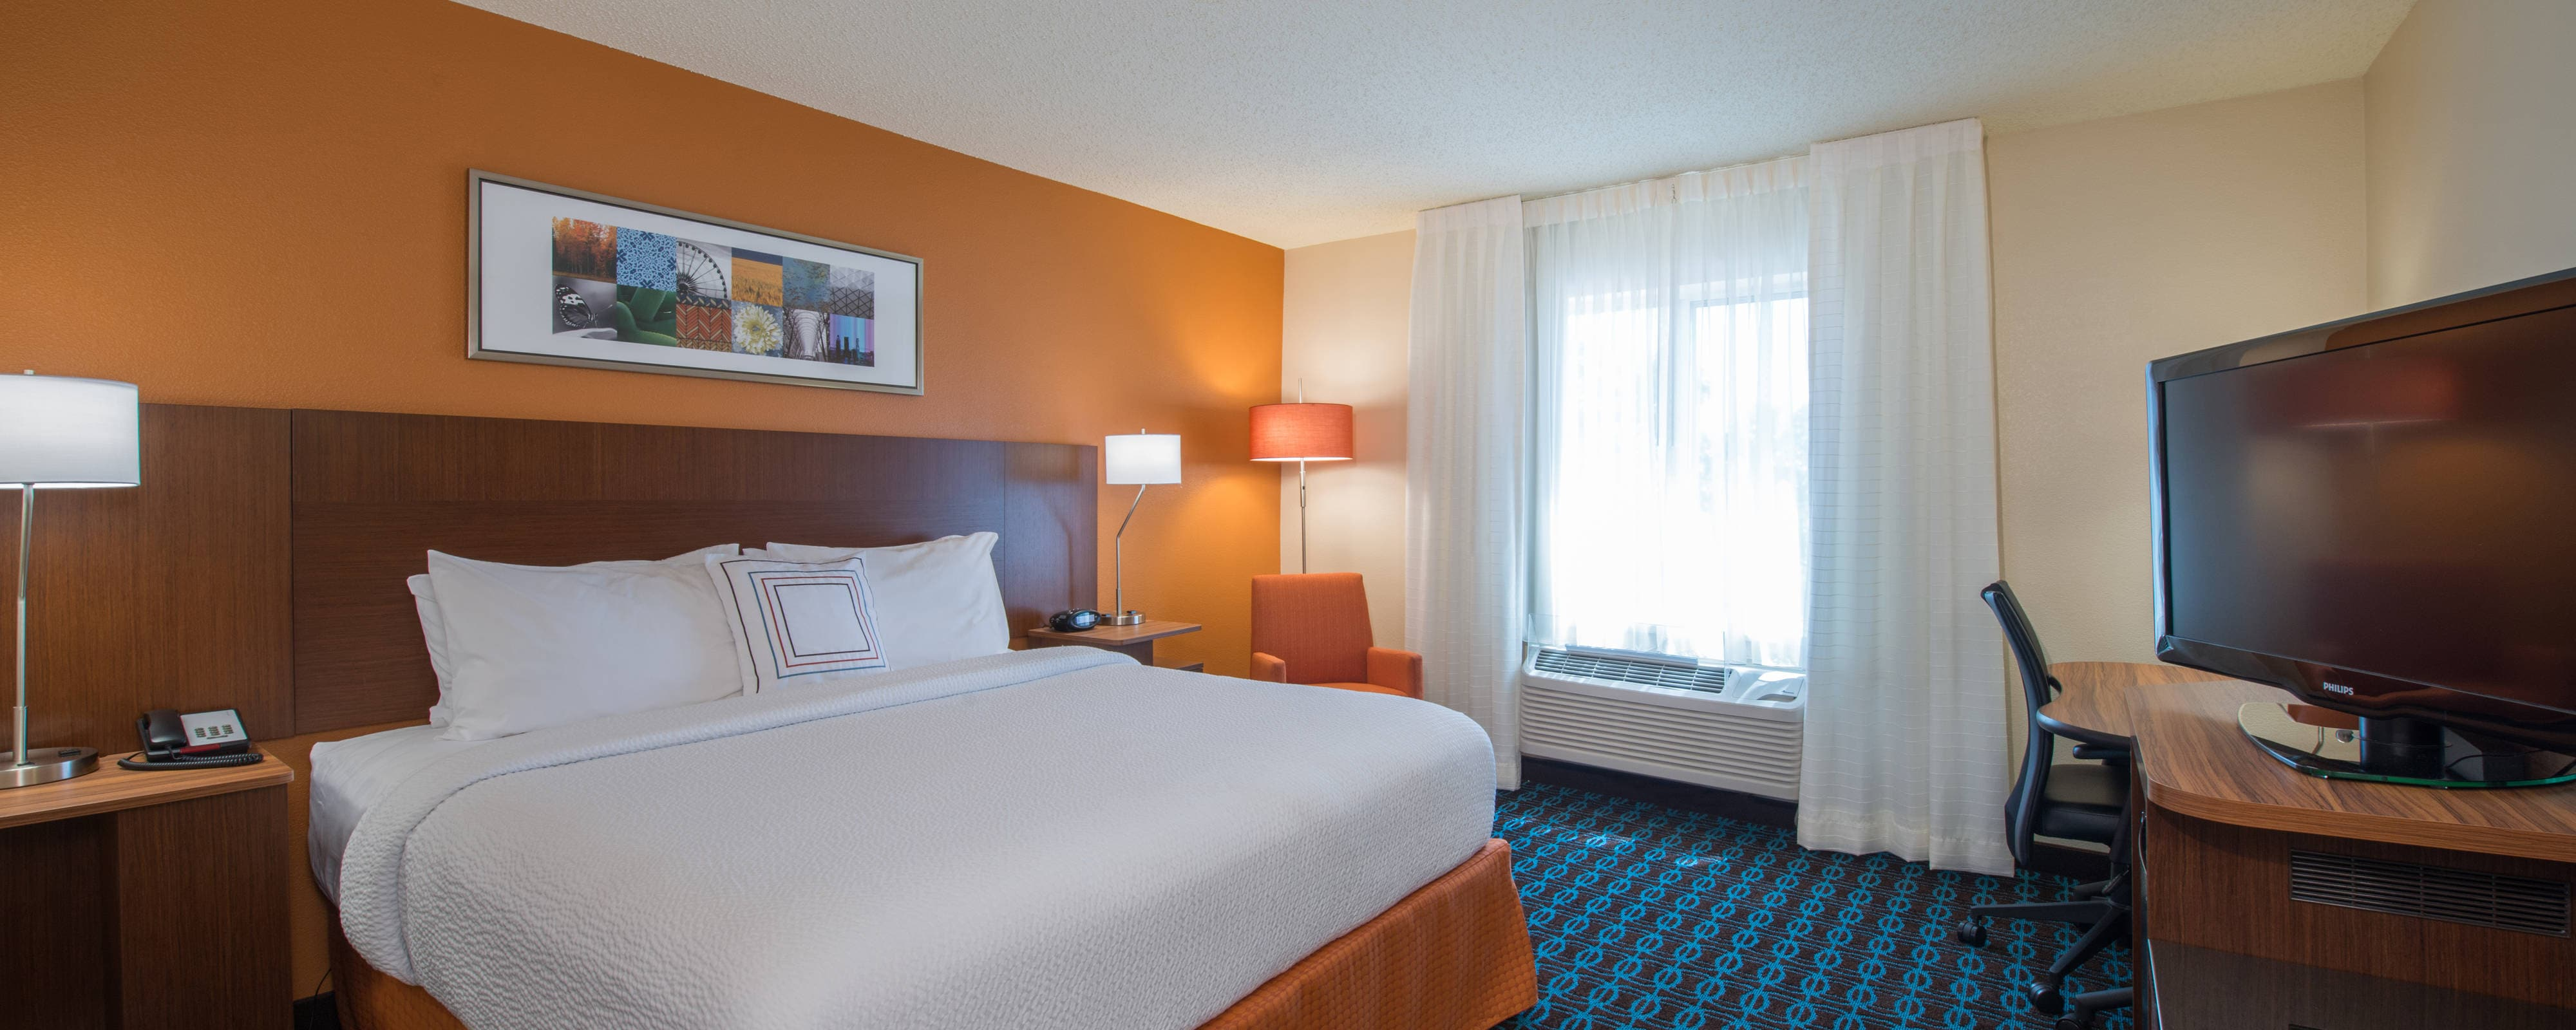 Hotels near Texas Stadium Dallas